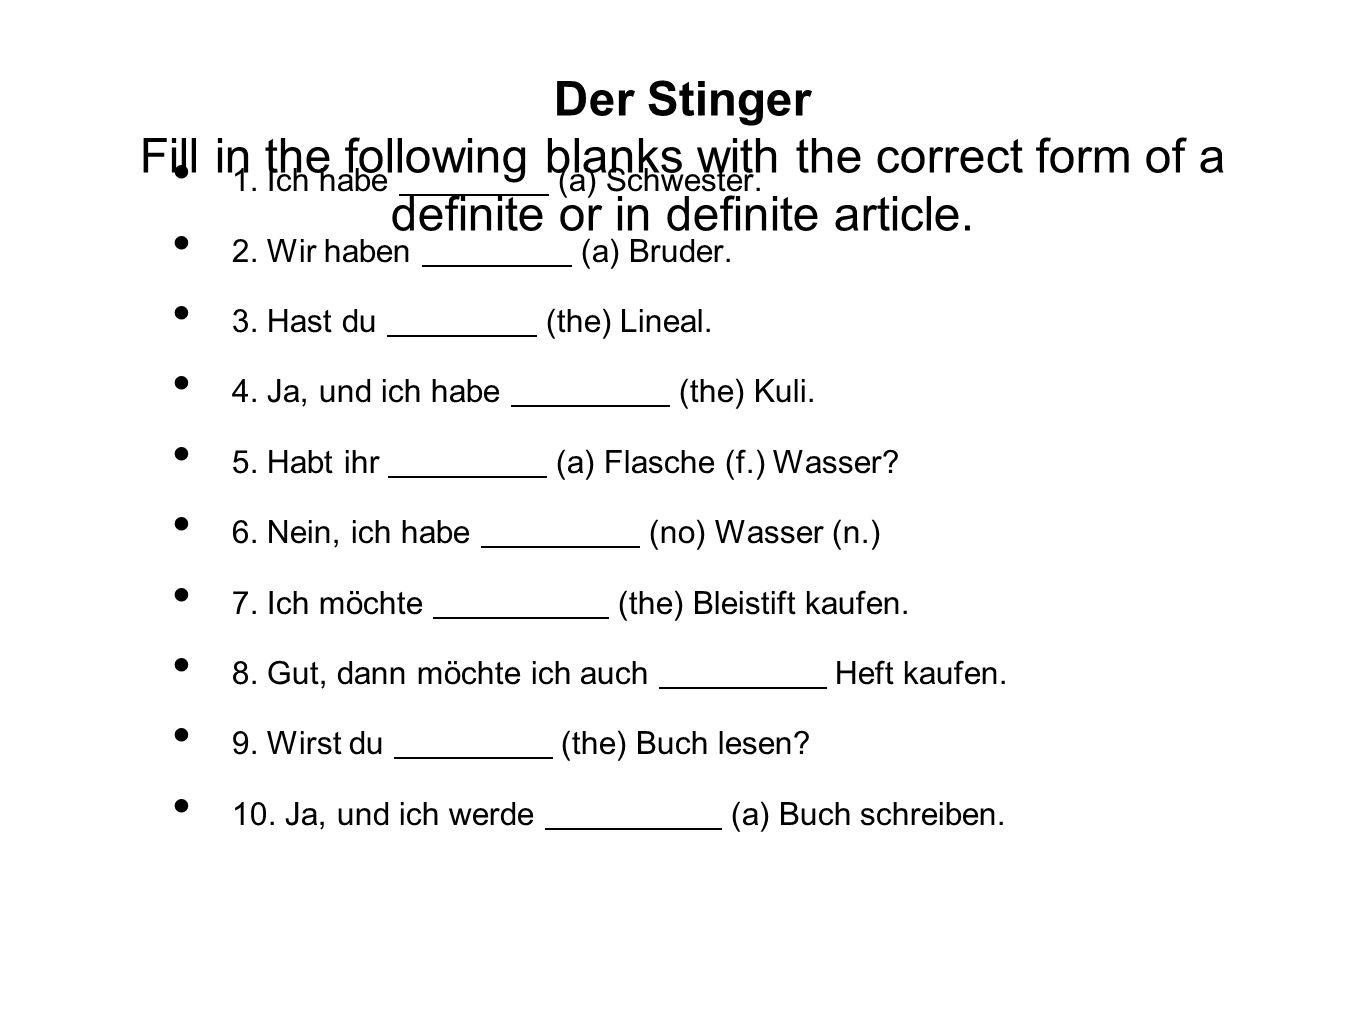 Der Stinger Fill in the following blanks with the correct form of a definite or in definite article. 1. Ich habe (a) Schwester. 2. Wir haben (a) Brude